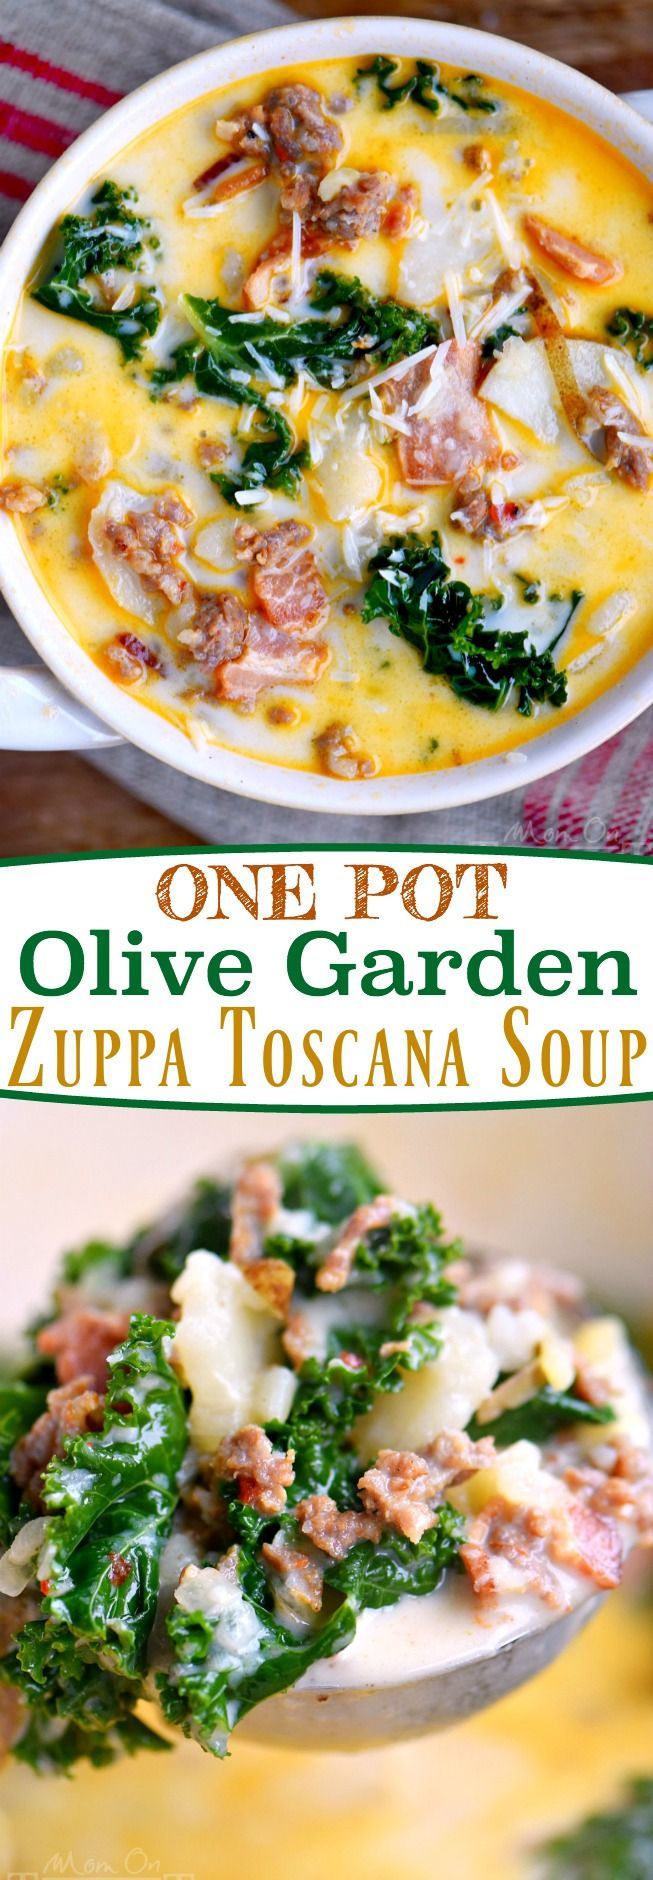 The whole family will love this copycat One Pot Olive Garden Zuppa Toscana Soup! Comfort food at it's best! Loaded with bacon, sausage, potatoes, and kale! So delicious and filling!